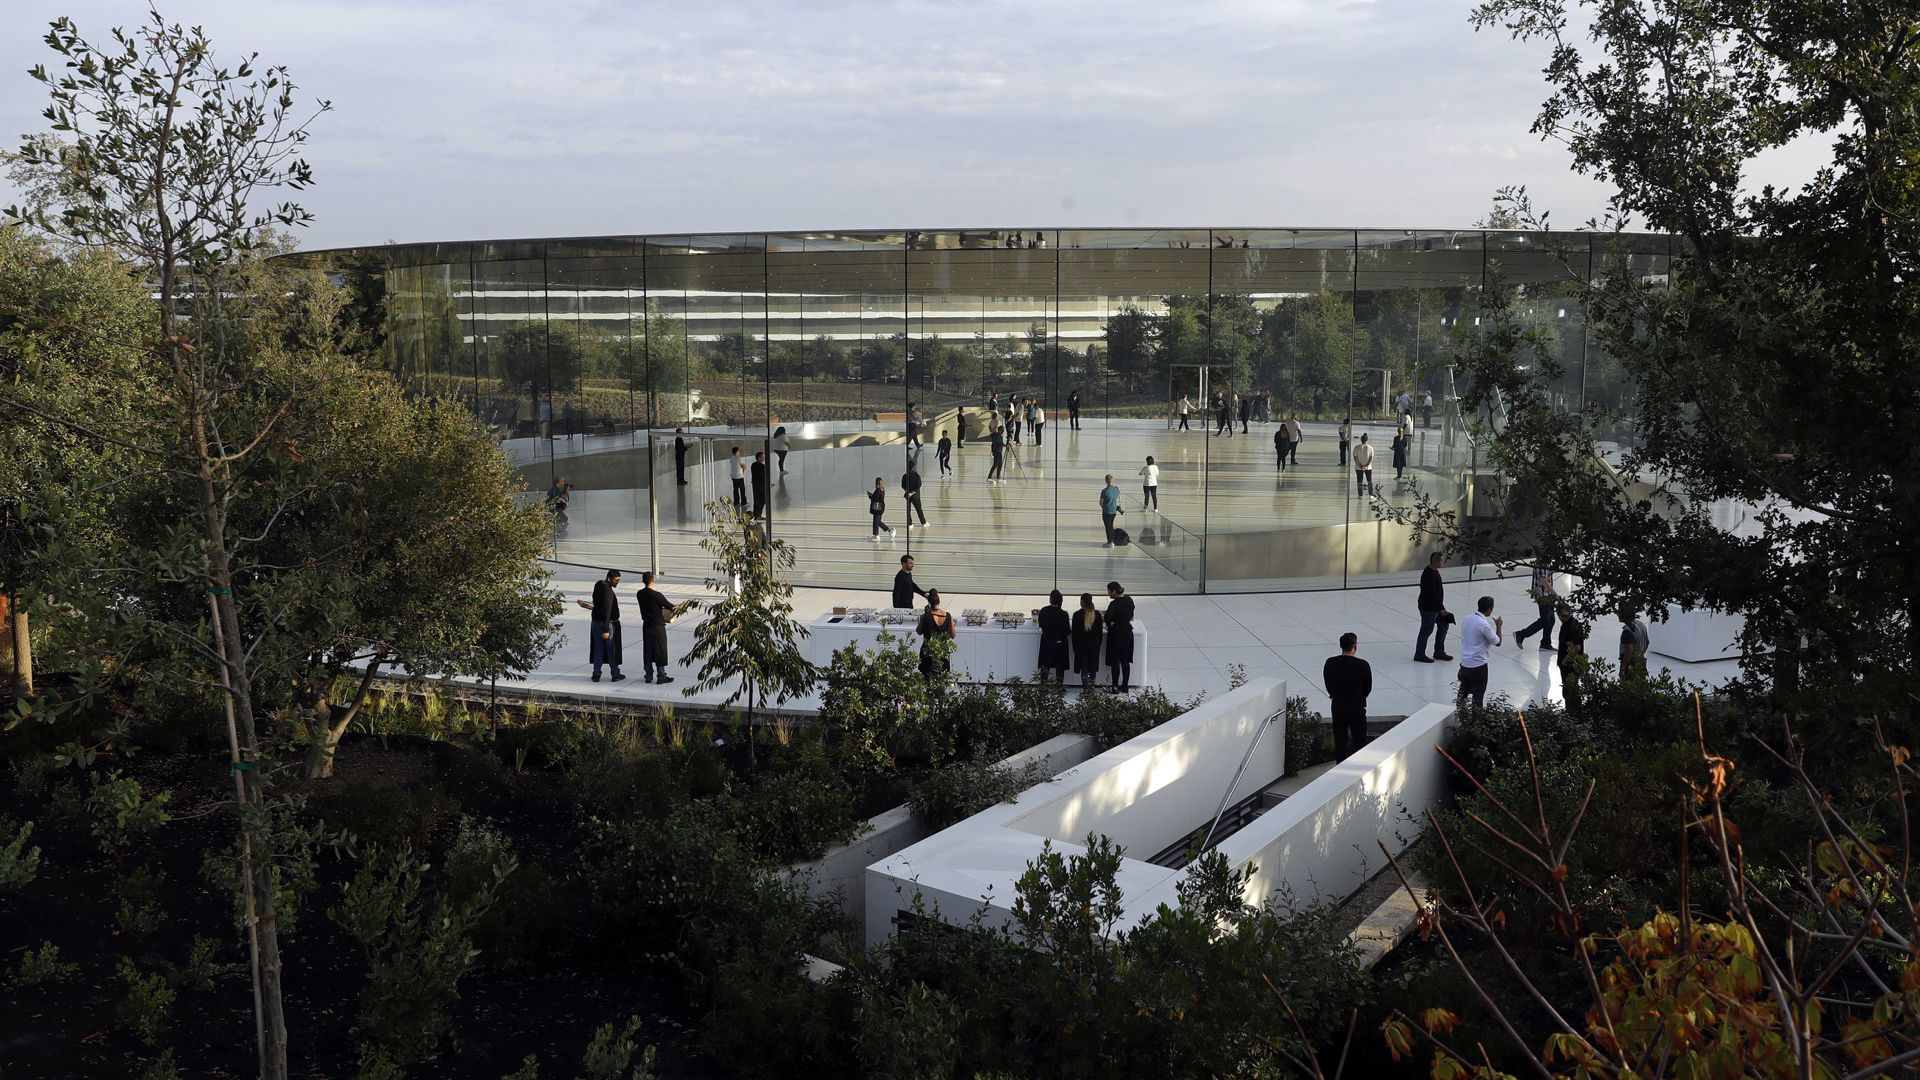 The new Apple campus